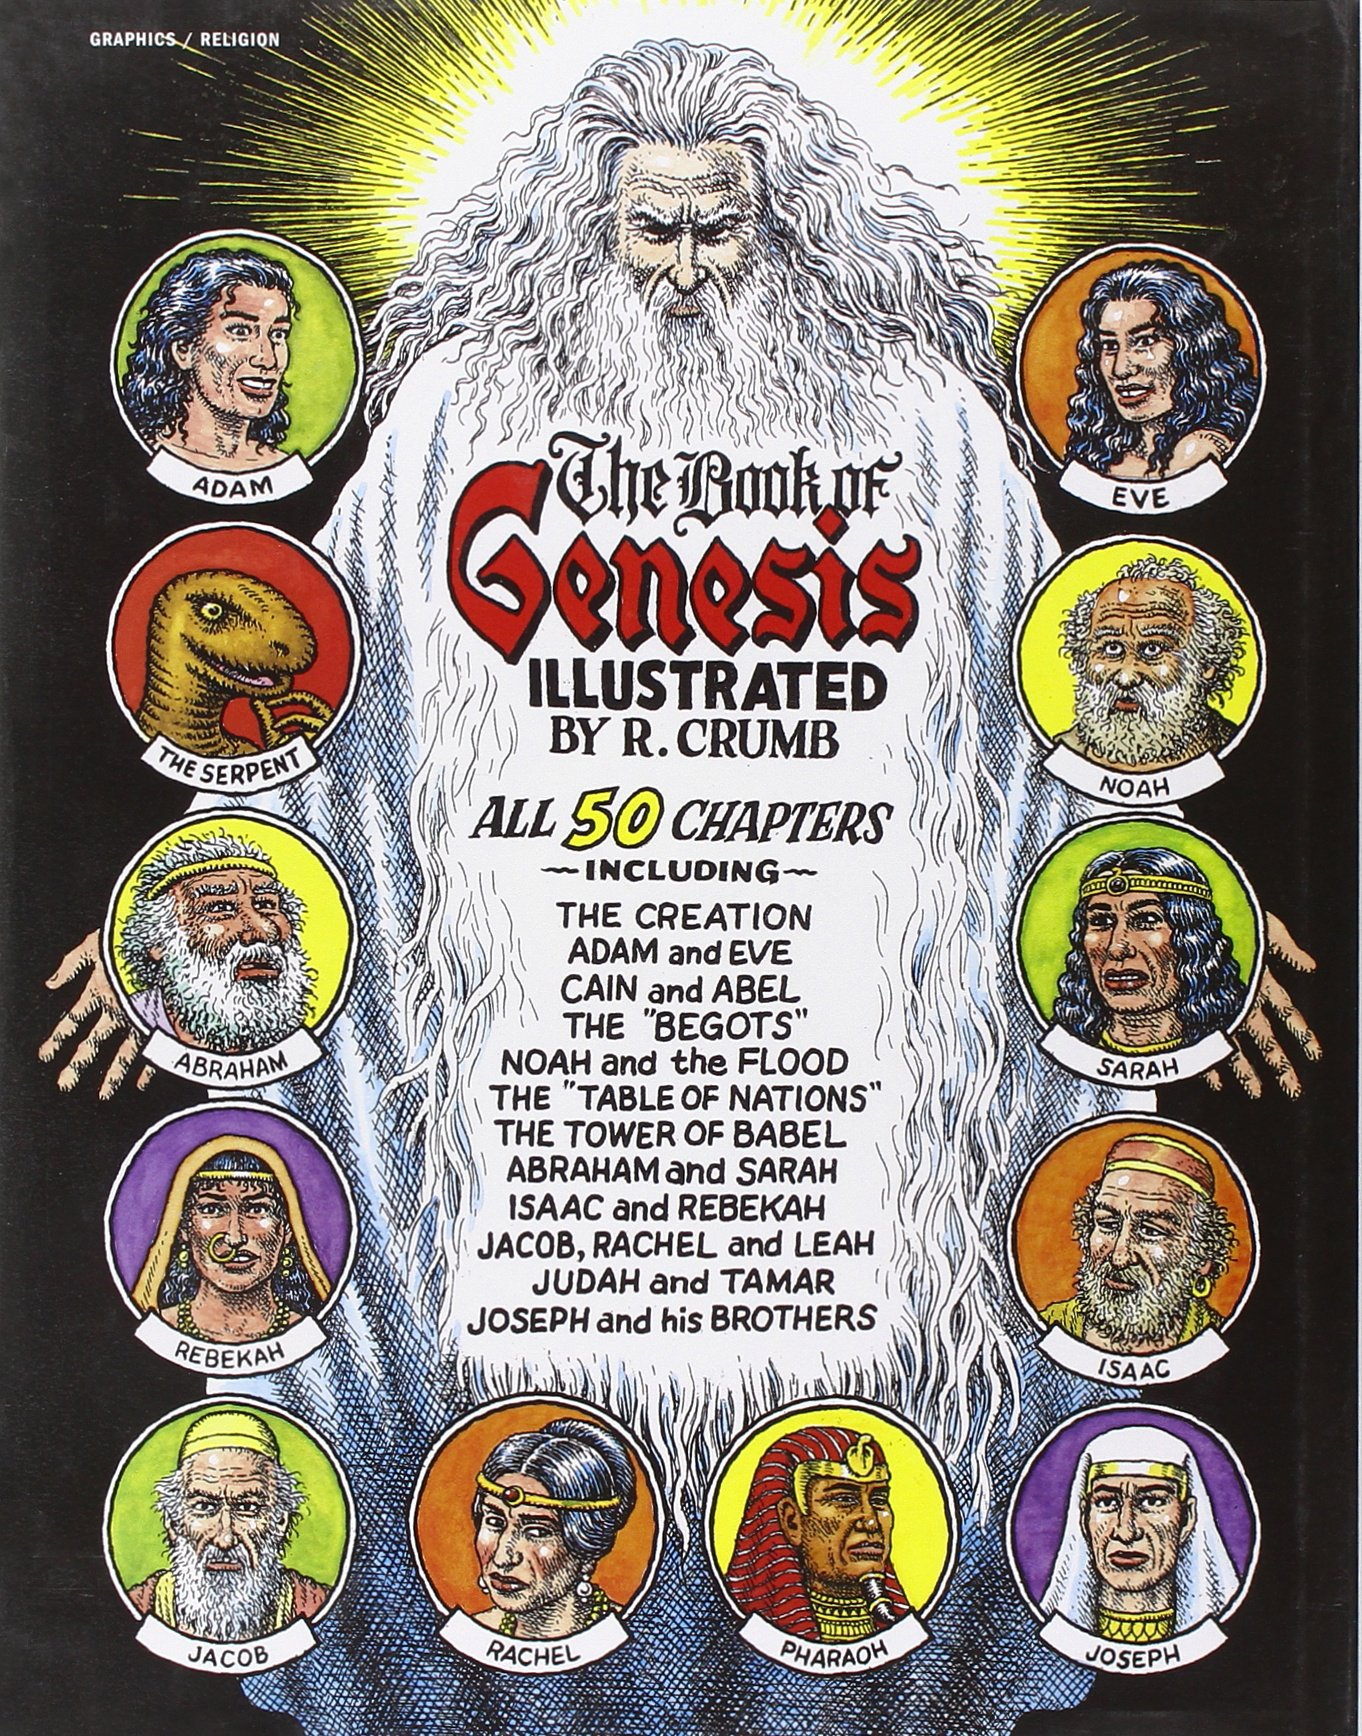 the book of genesis illustrated by r crumb r crumb